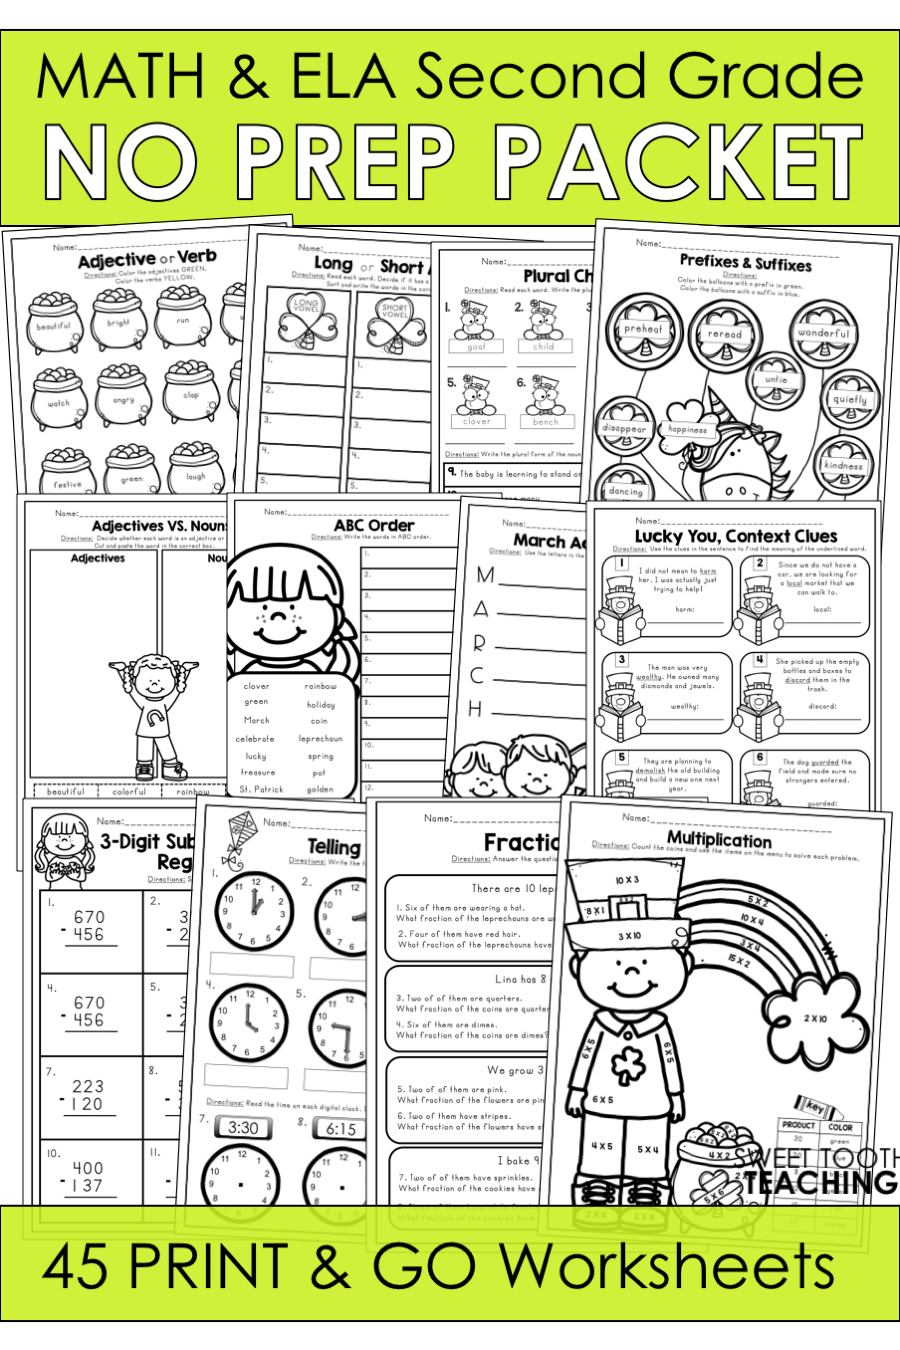 March No Prep Packet Second Grade Second Grade Elementary Worksheets Subtraction Word Problems [ 1350 x 900 Pixel ]